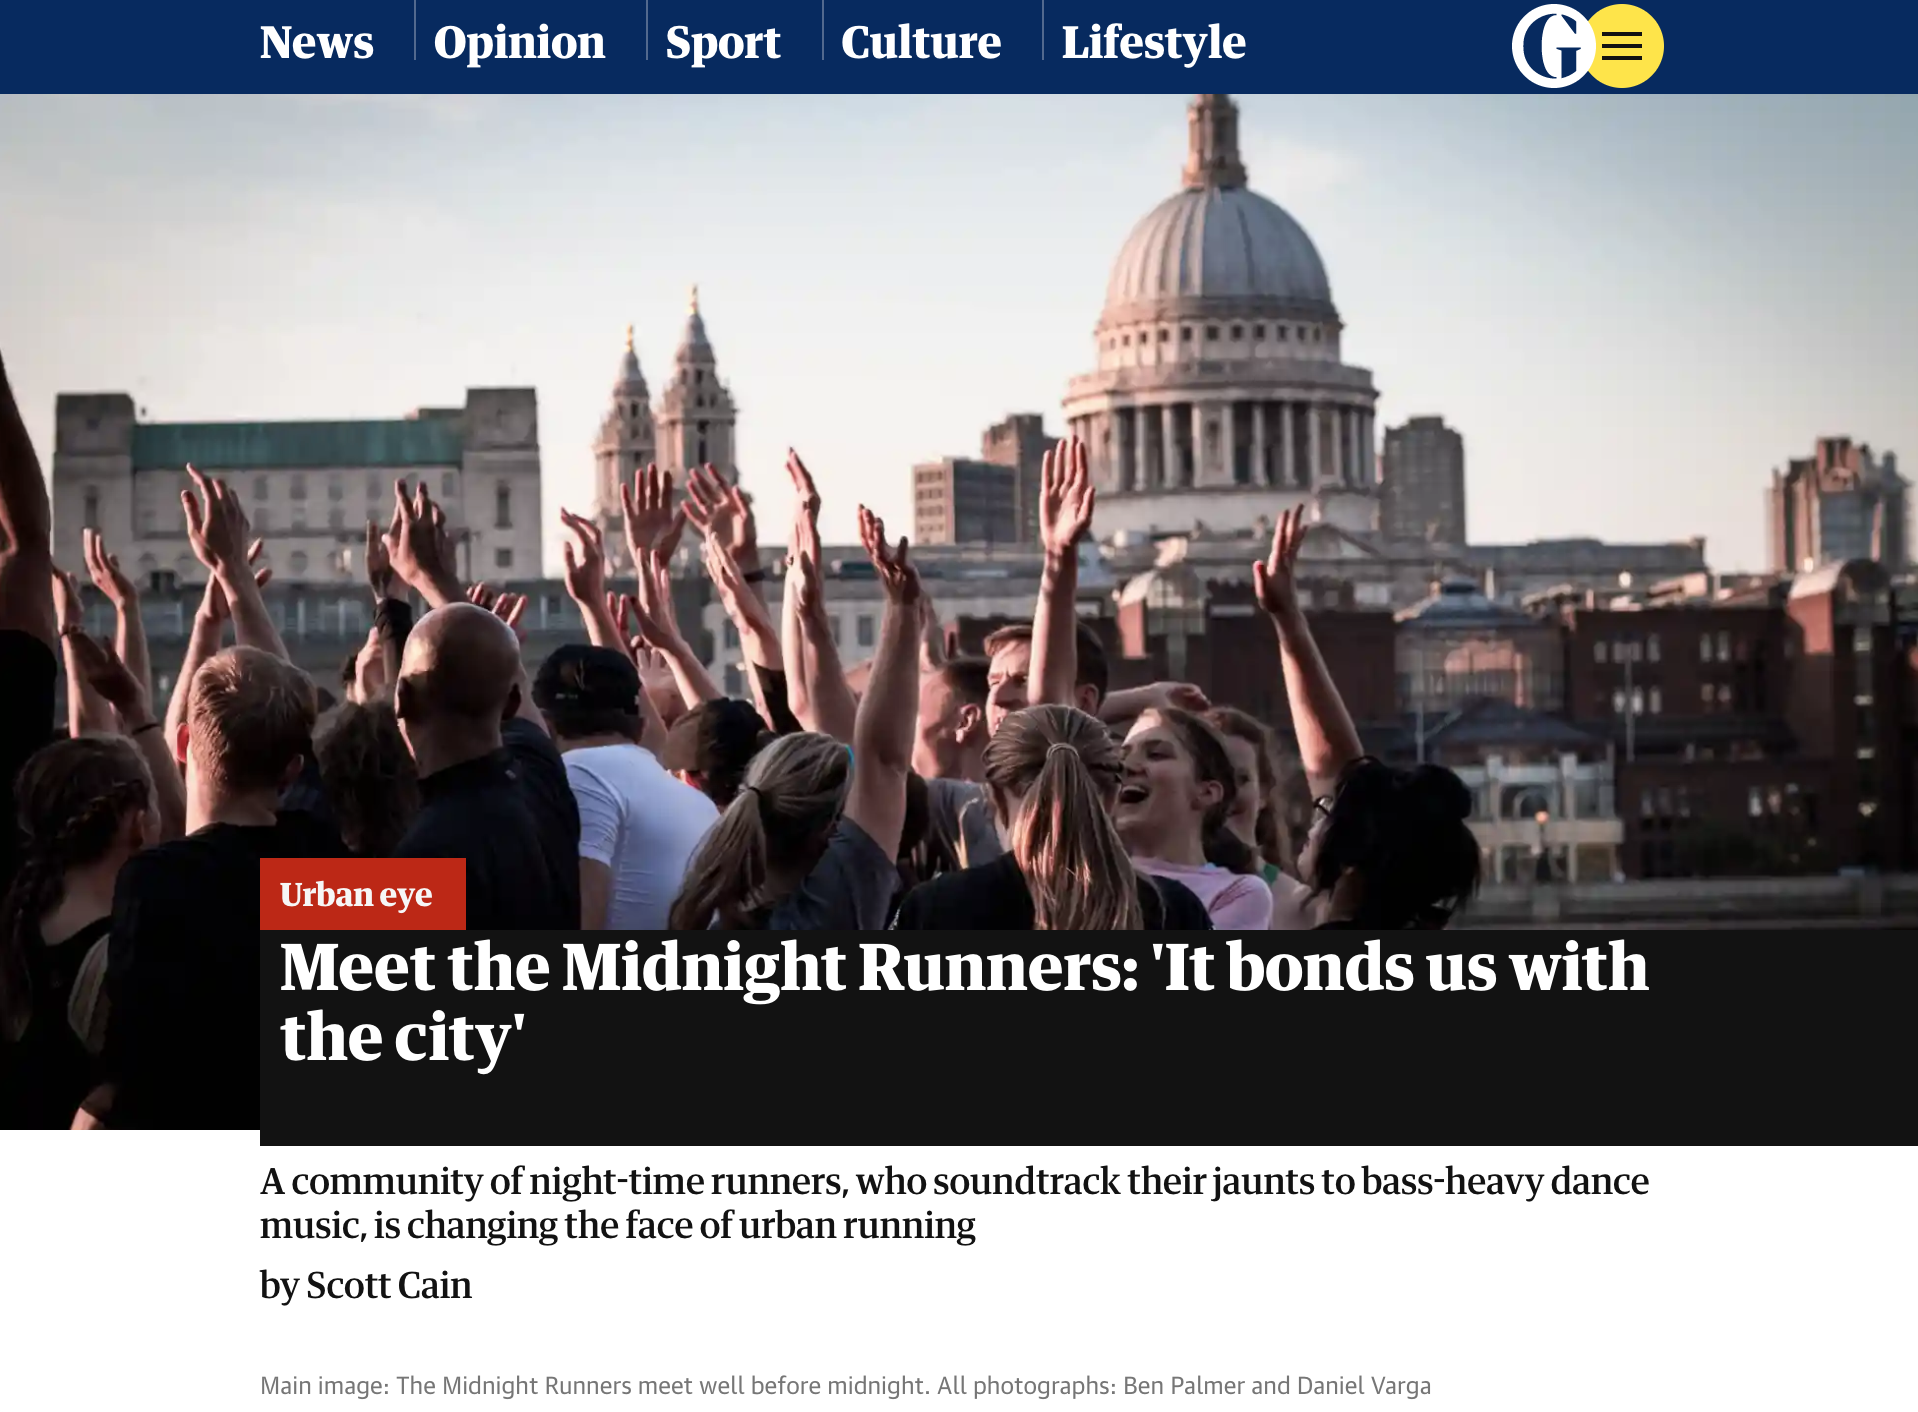 Midnight Running in the City. Every bit as good as it sounds. - Scott Cain, RunFriendly CEO, writes in the Guardian. Scott joins a community of night-time runners, who soundtrack their jaunts to bass-heavy dance music, which is changing the face of urban running.